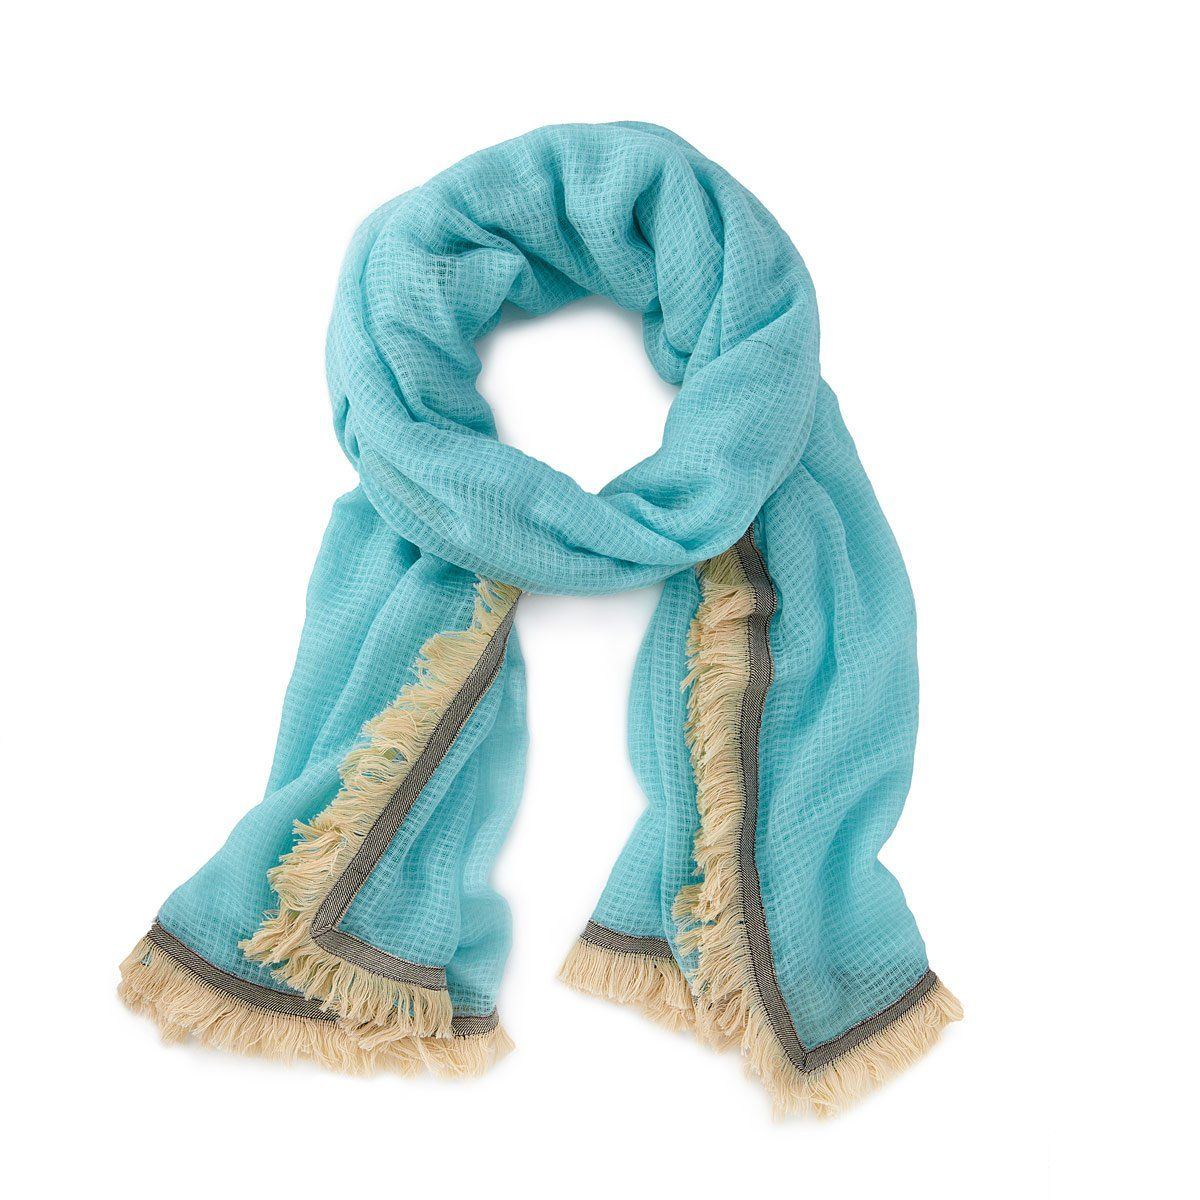 a723ab2e7 Poolside Aqua Scarf in 2019 | Products | Aqua, Summer scarves, Loom